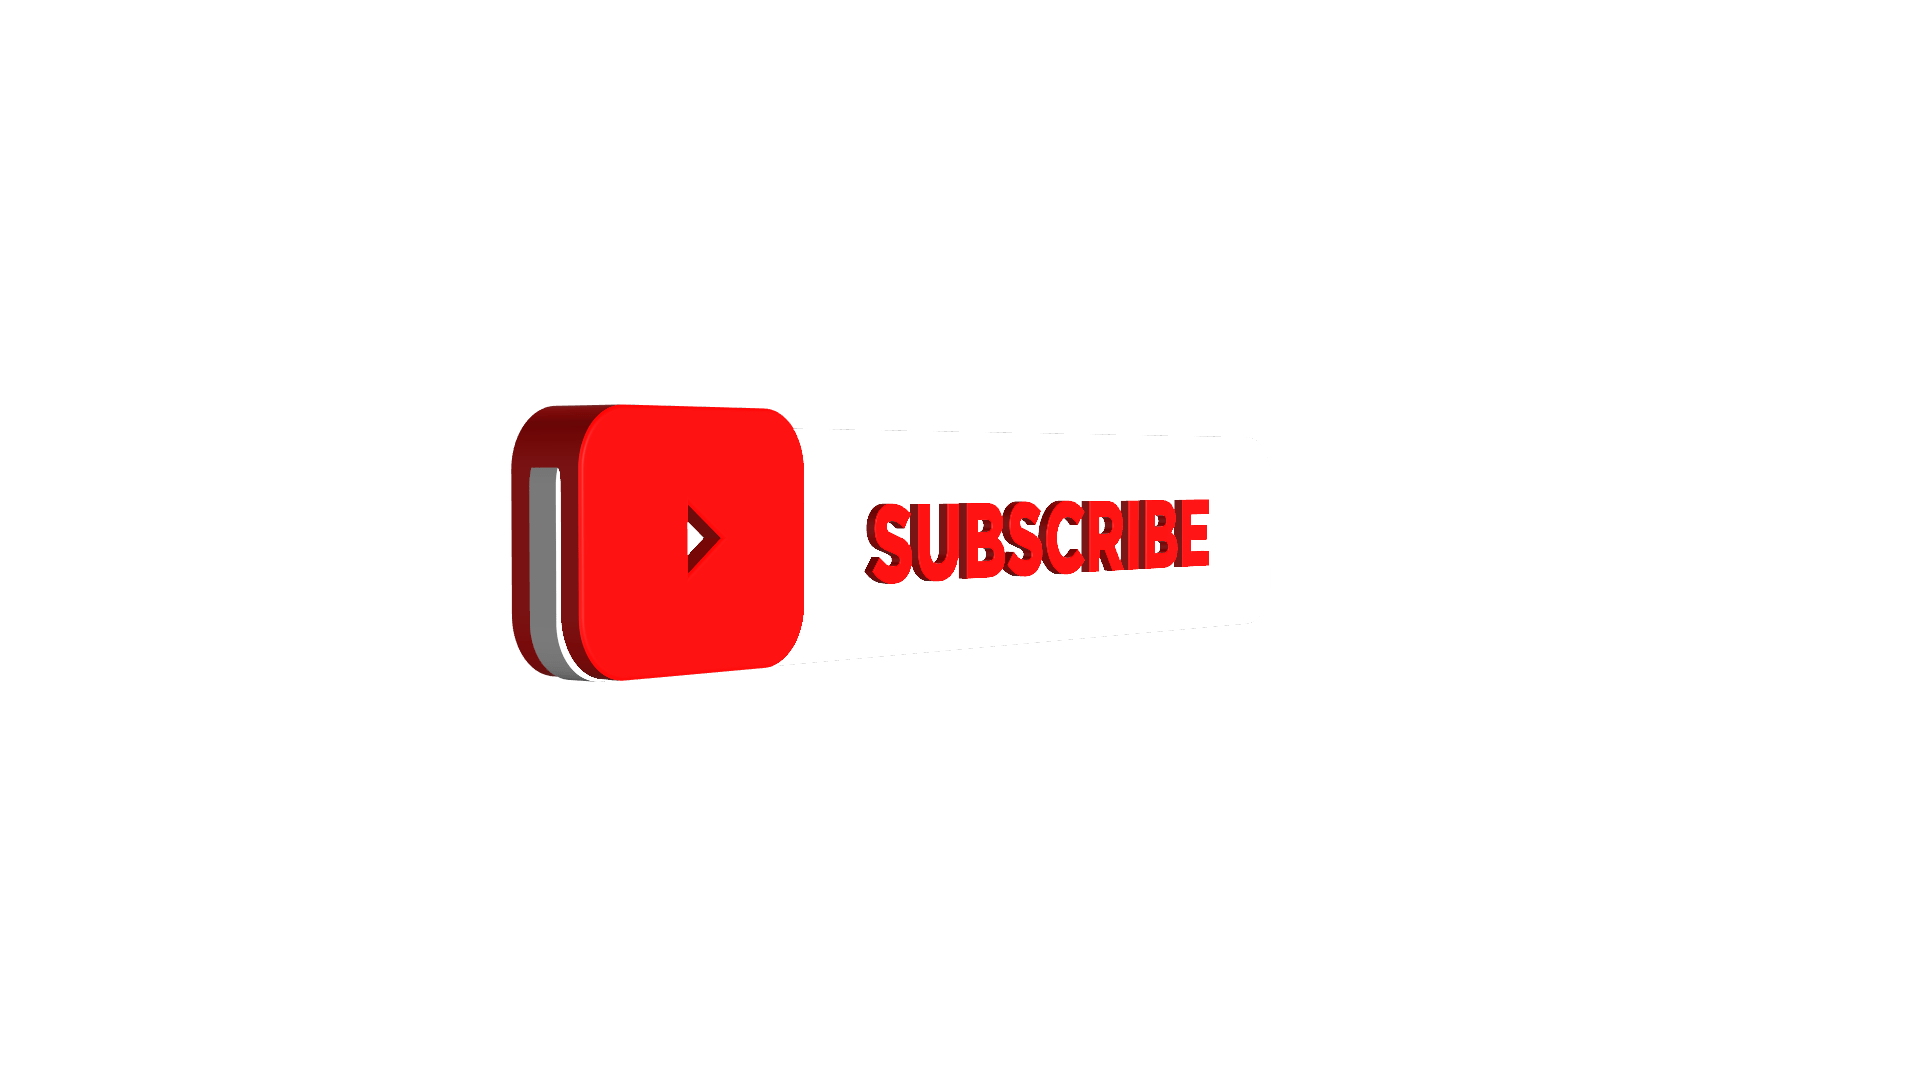 Subscribe my youtube channel png - MTC TUTORIALS